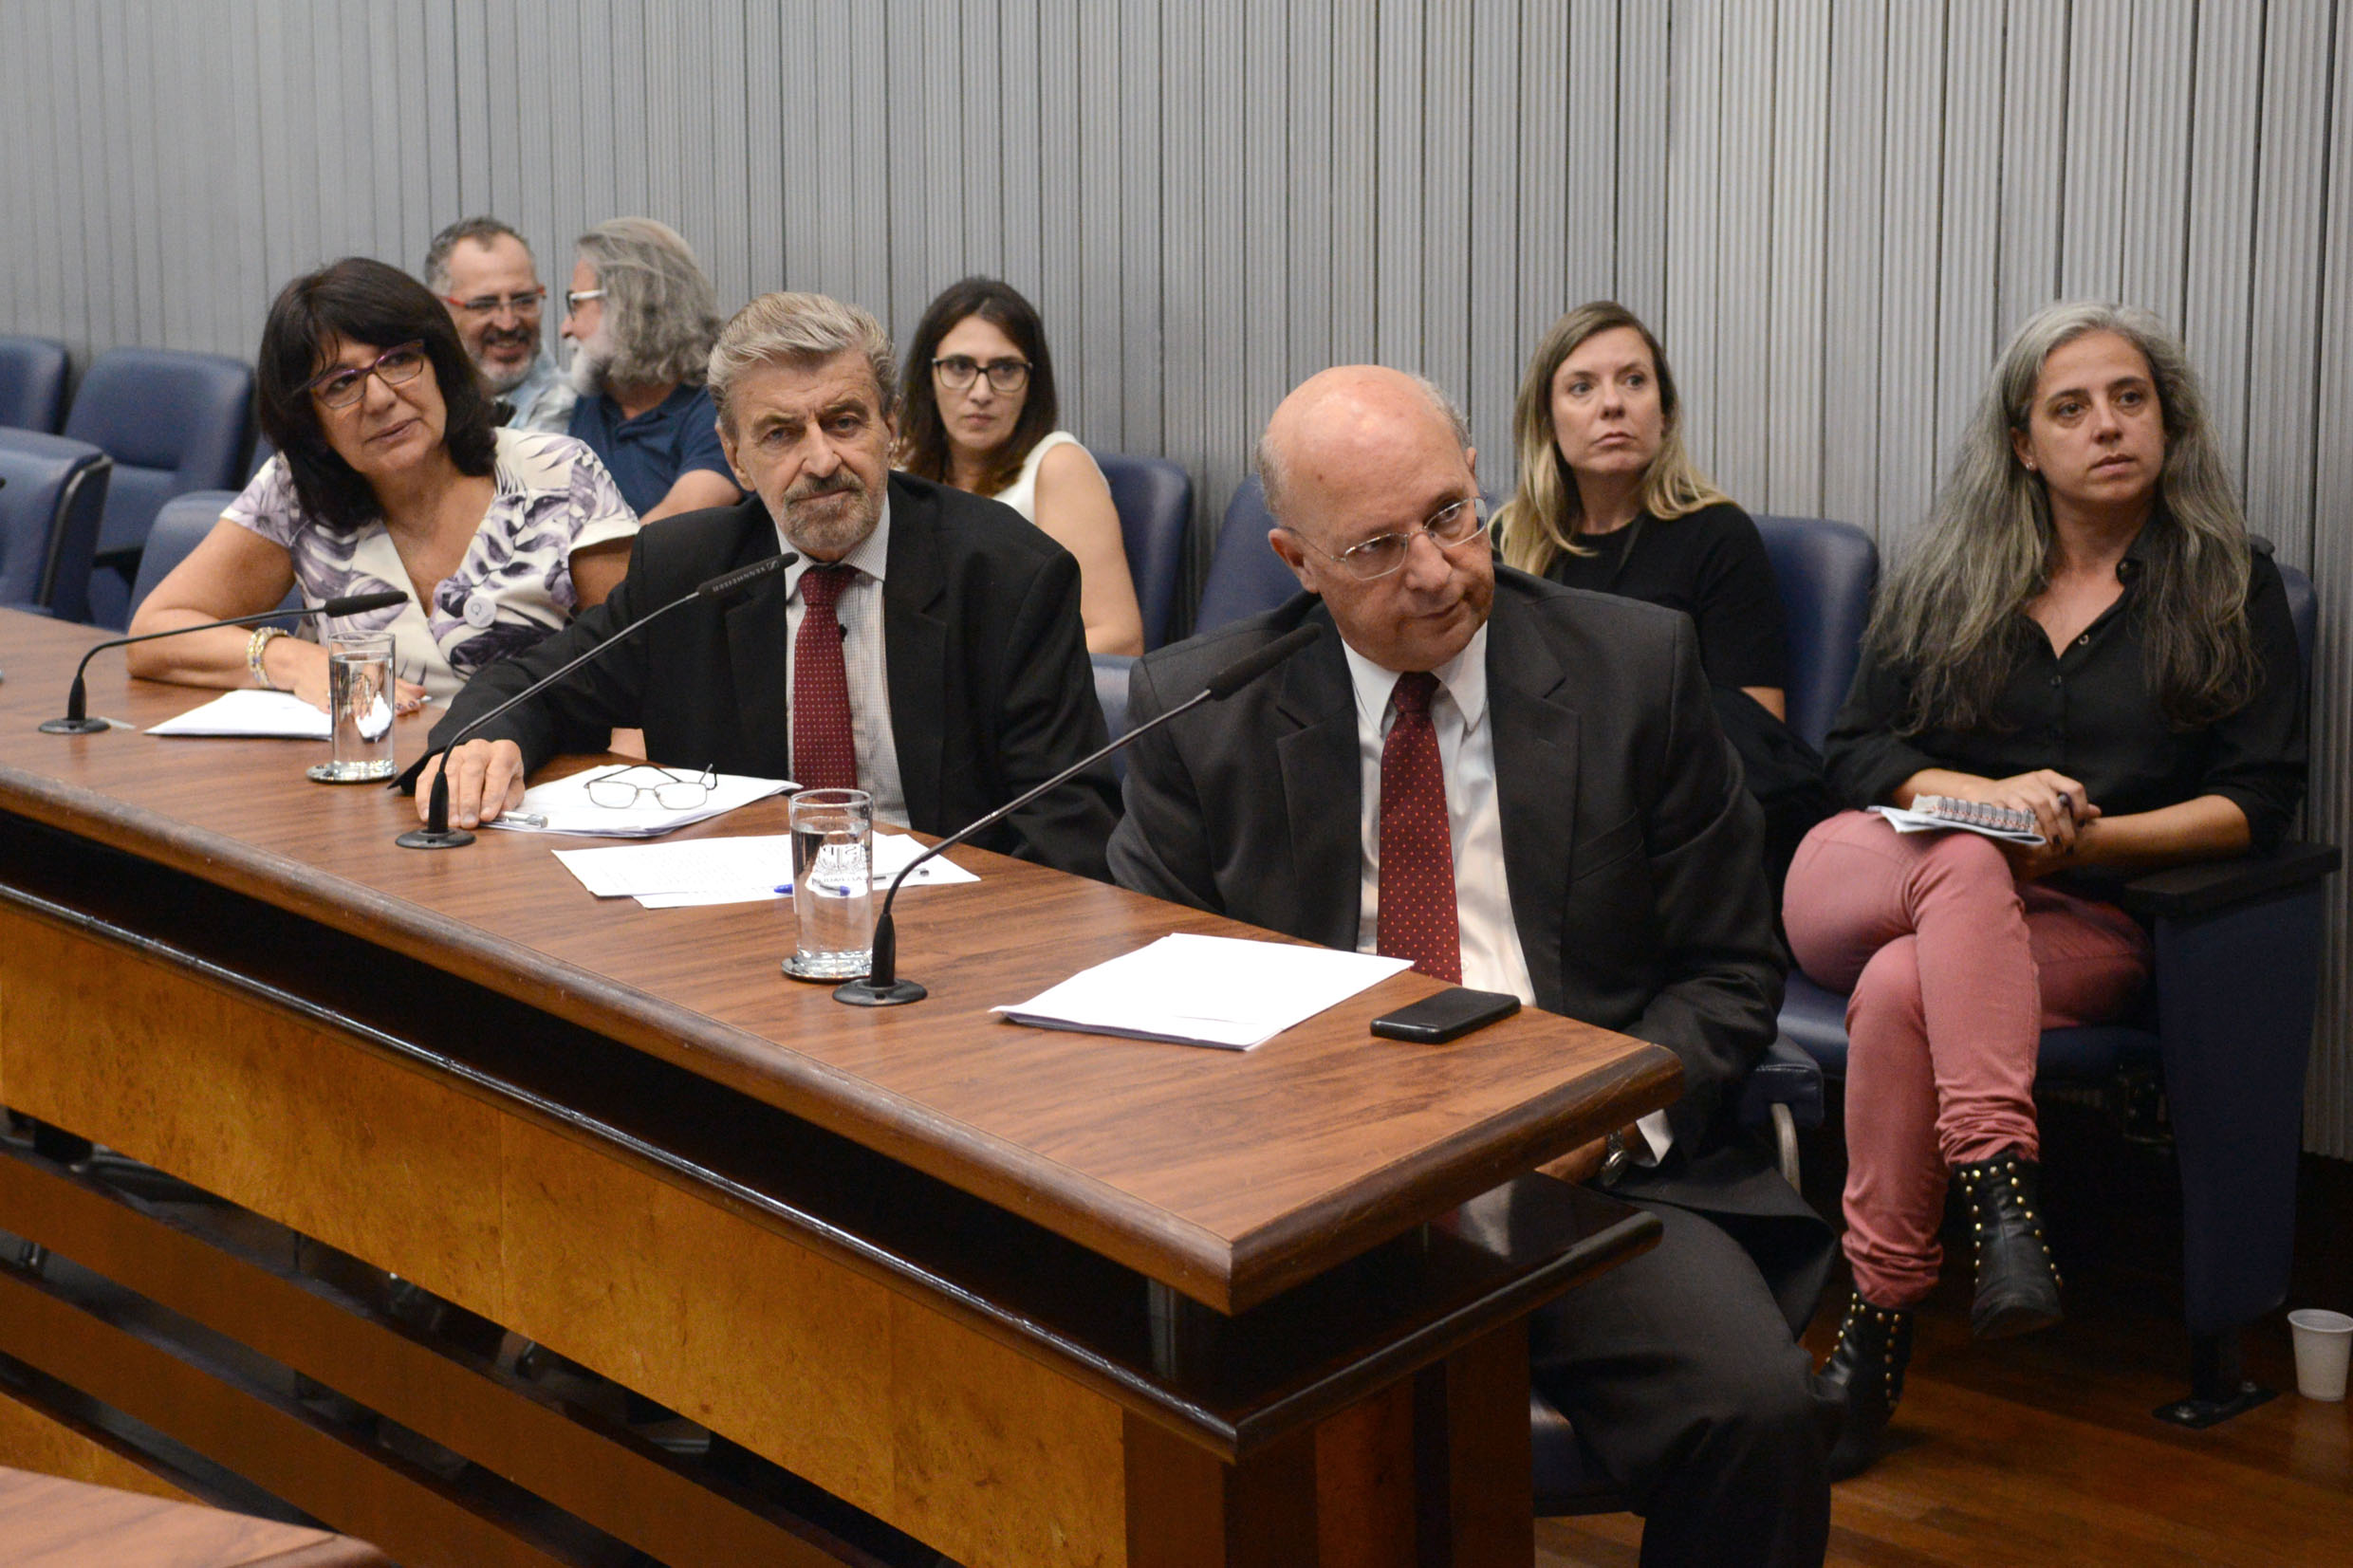 Parlamentares na comissão<a style='float:right' href='https://www3.al.sp.gov.br/repositorio/noticia/N-03-2019/fg231013.jpg' target=_blank><img src='/_img/material-file-download-white.png' width='14px' alt='Clique para baixar a imagem'></a>